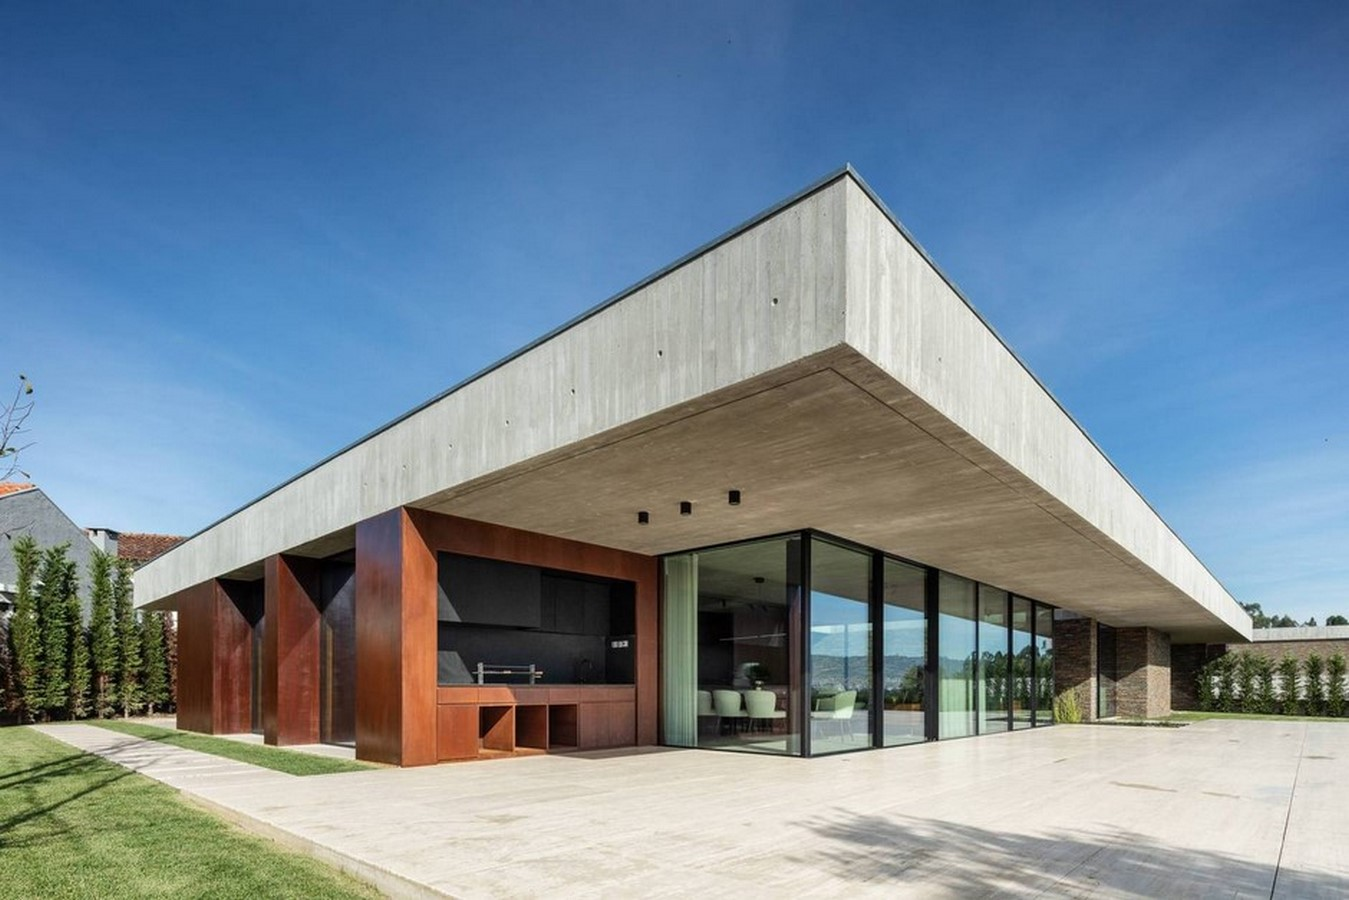 50 Examples of Modern concrete homes - Sheet26